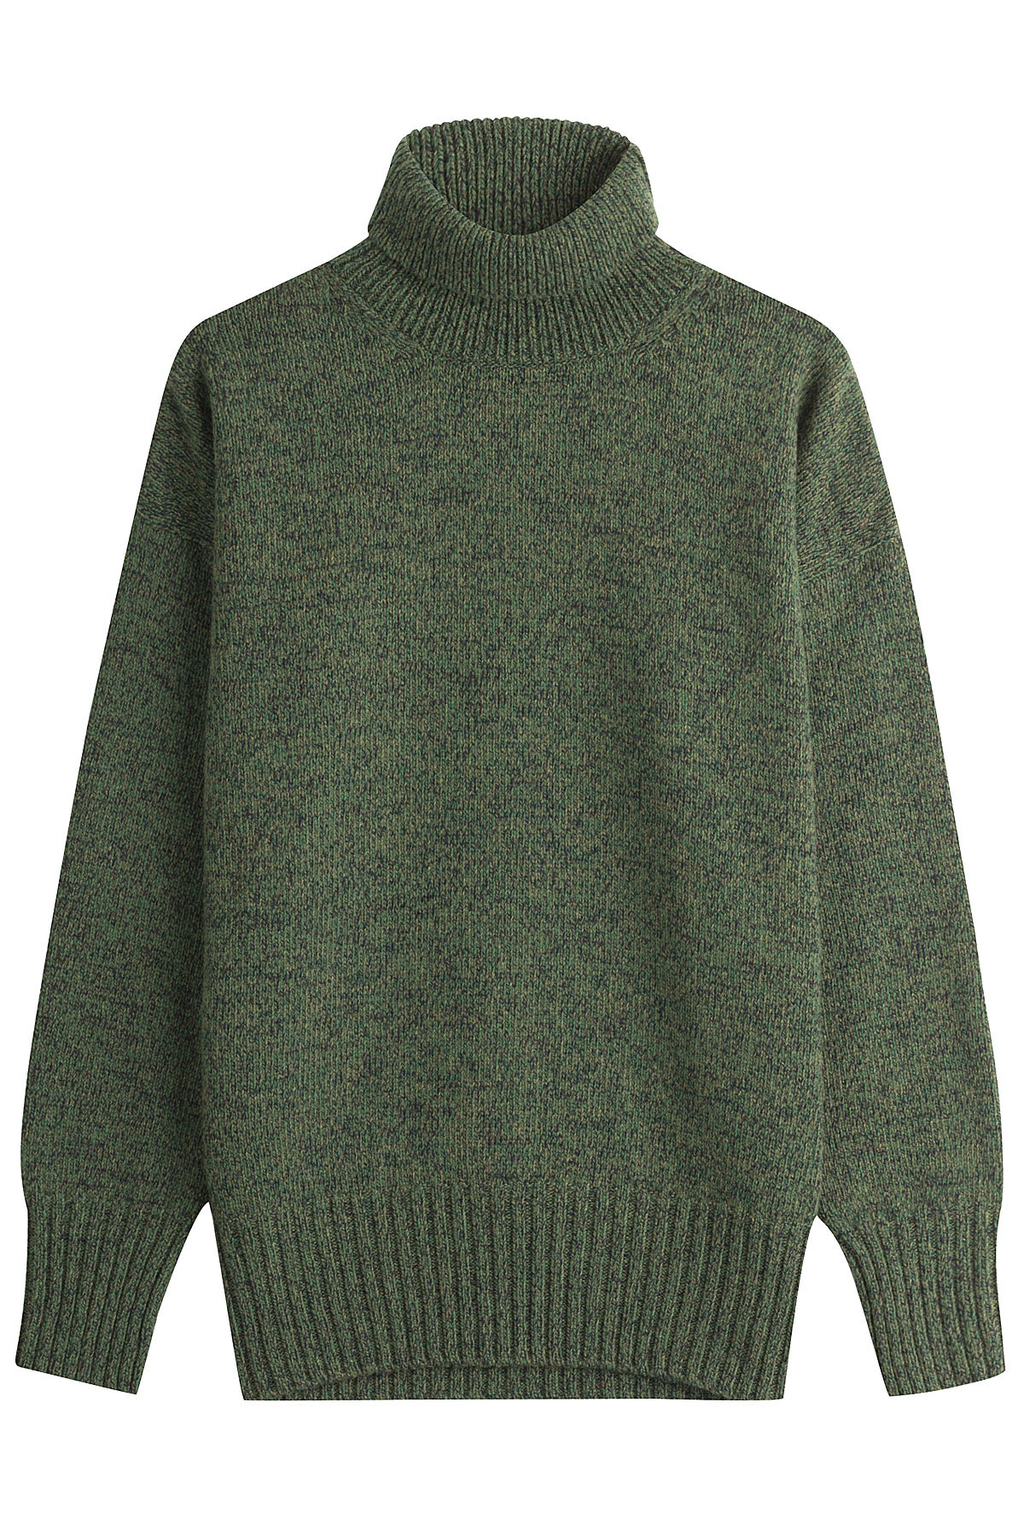 Merino Wool Pullover - pattern: plain; length: below the bottom; neckline: roll neck; style: standard; predominant colour: khaki; occasions: casual, creative work; fibres: wool - 100%; fit: loose; sleeve length: long sleeve; sleeve style: standard; texture group: knits/crochet; pattern type: knitted - other; wardrobe: basic; season: a/w 2016